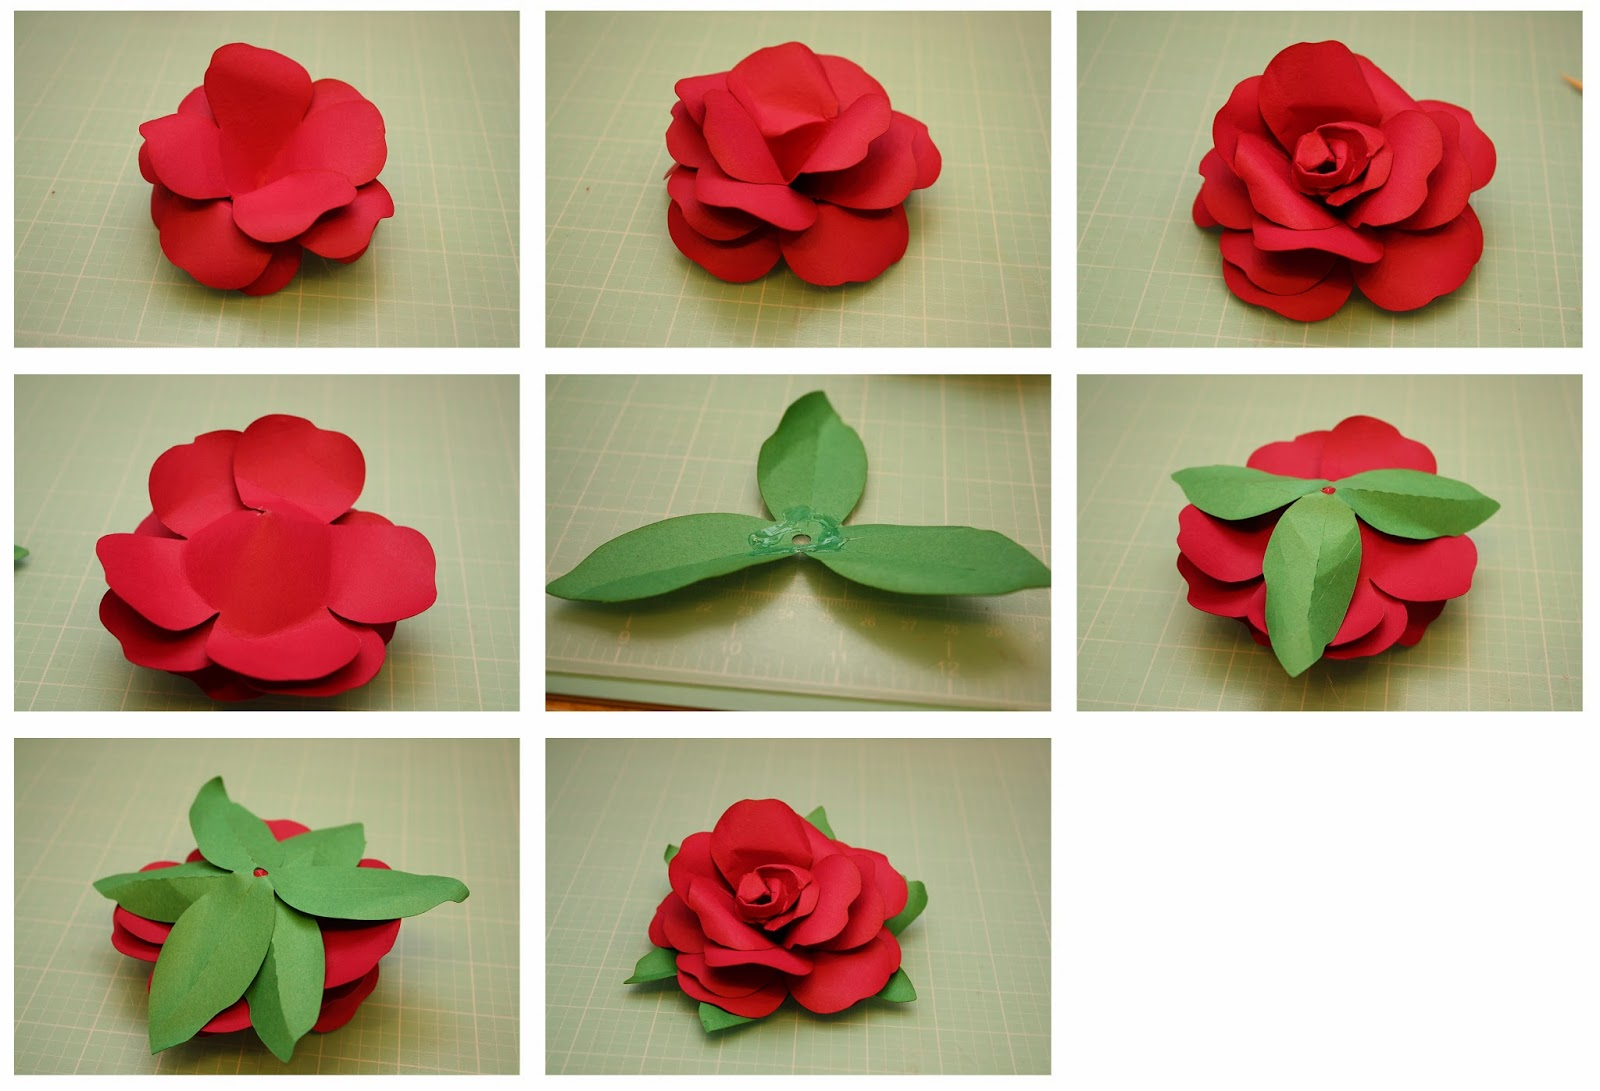 How To Make An Origami Flower And Stem